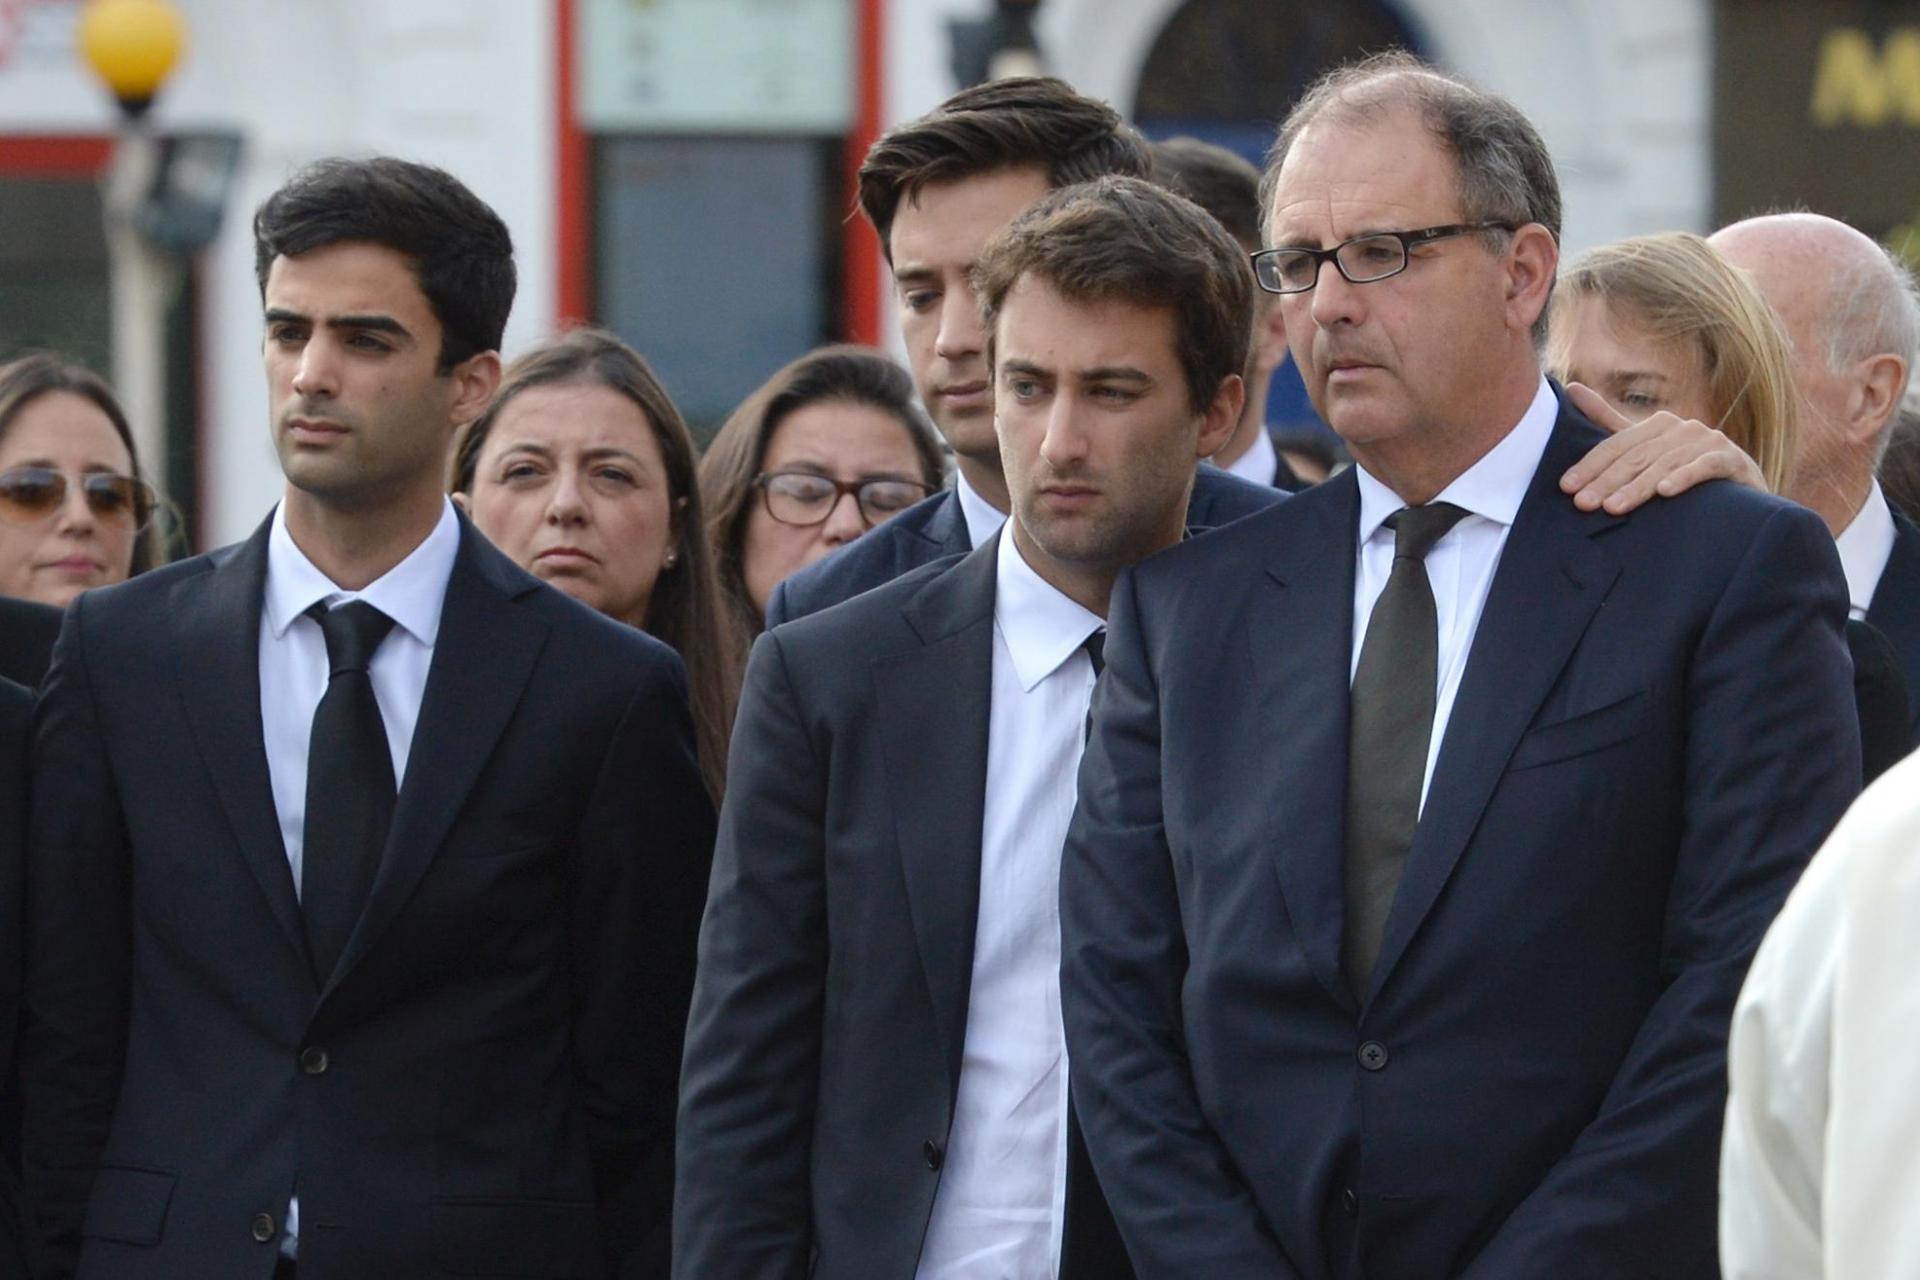 Daphne Caruana Galizia's husband and sons grieve during her funeral in November 2017. Photo: Matthew Mirabelli